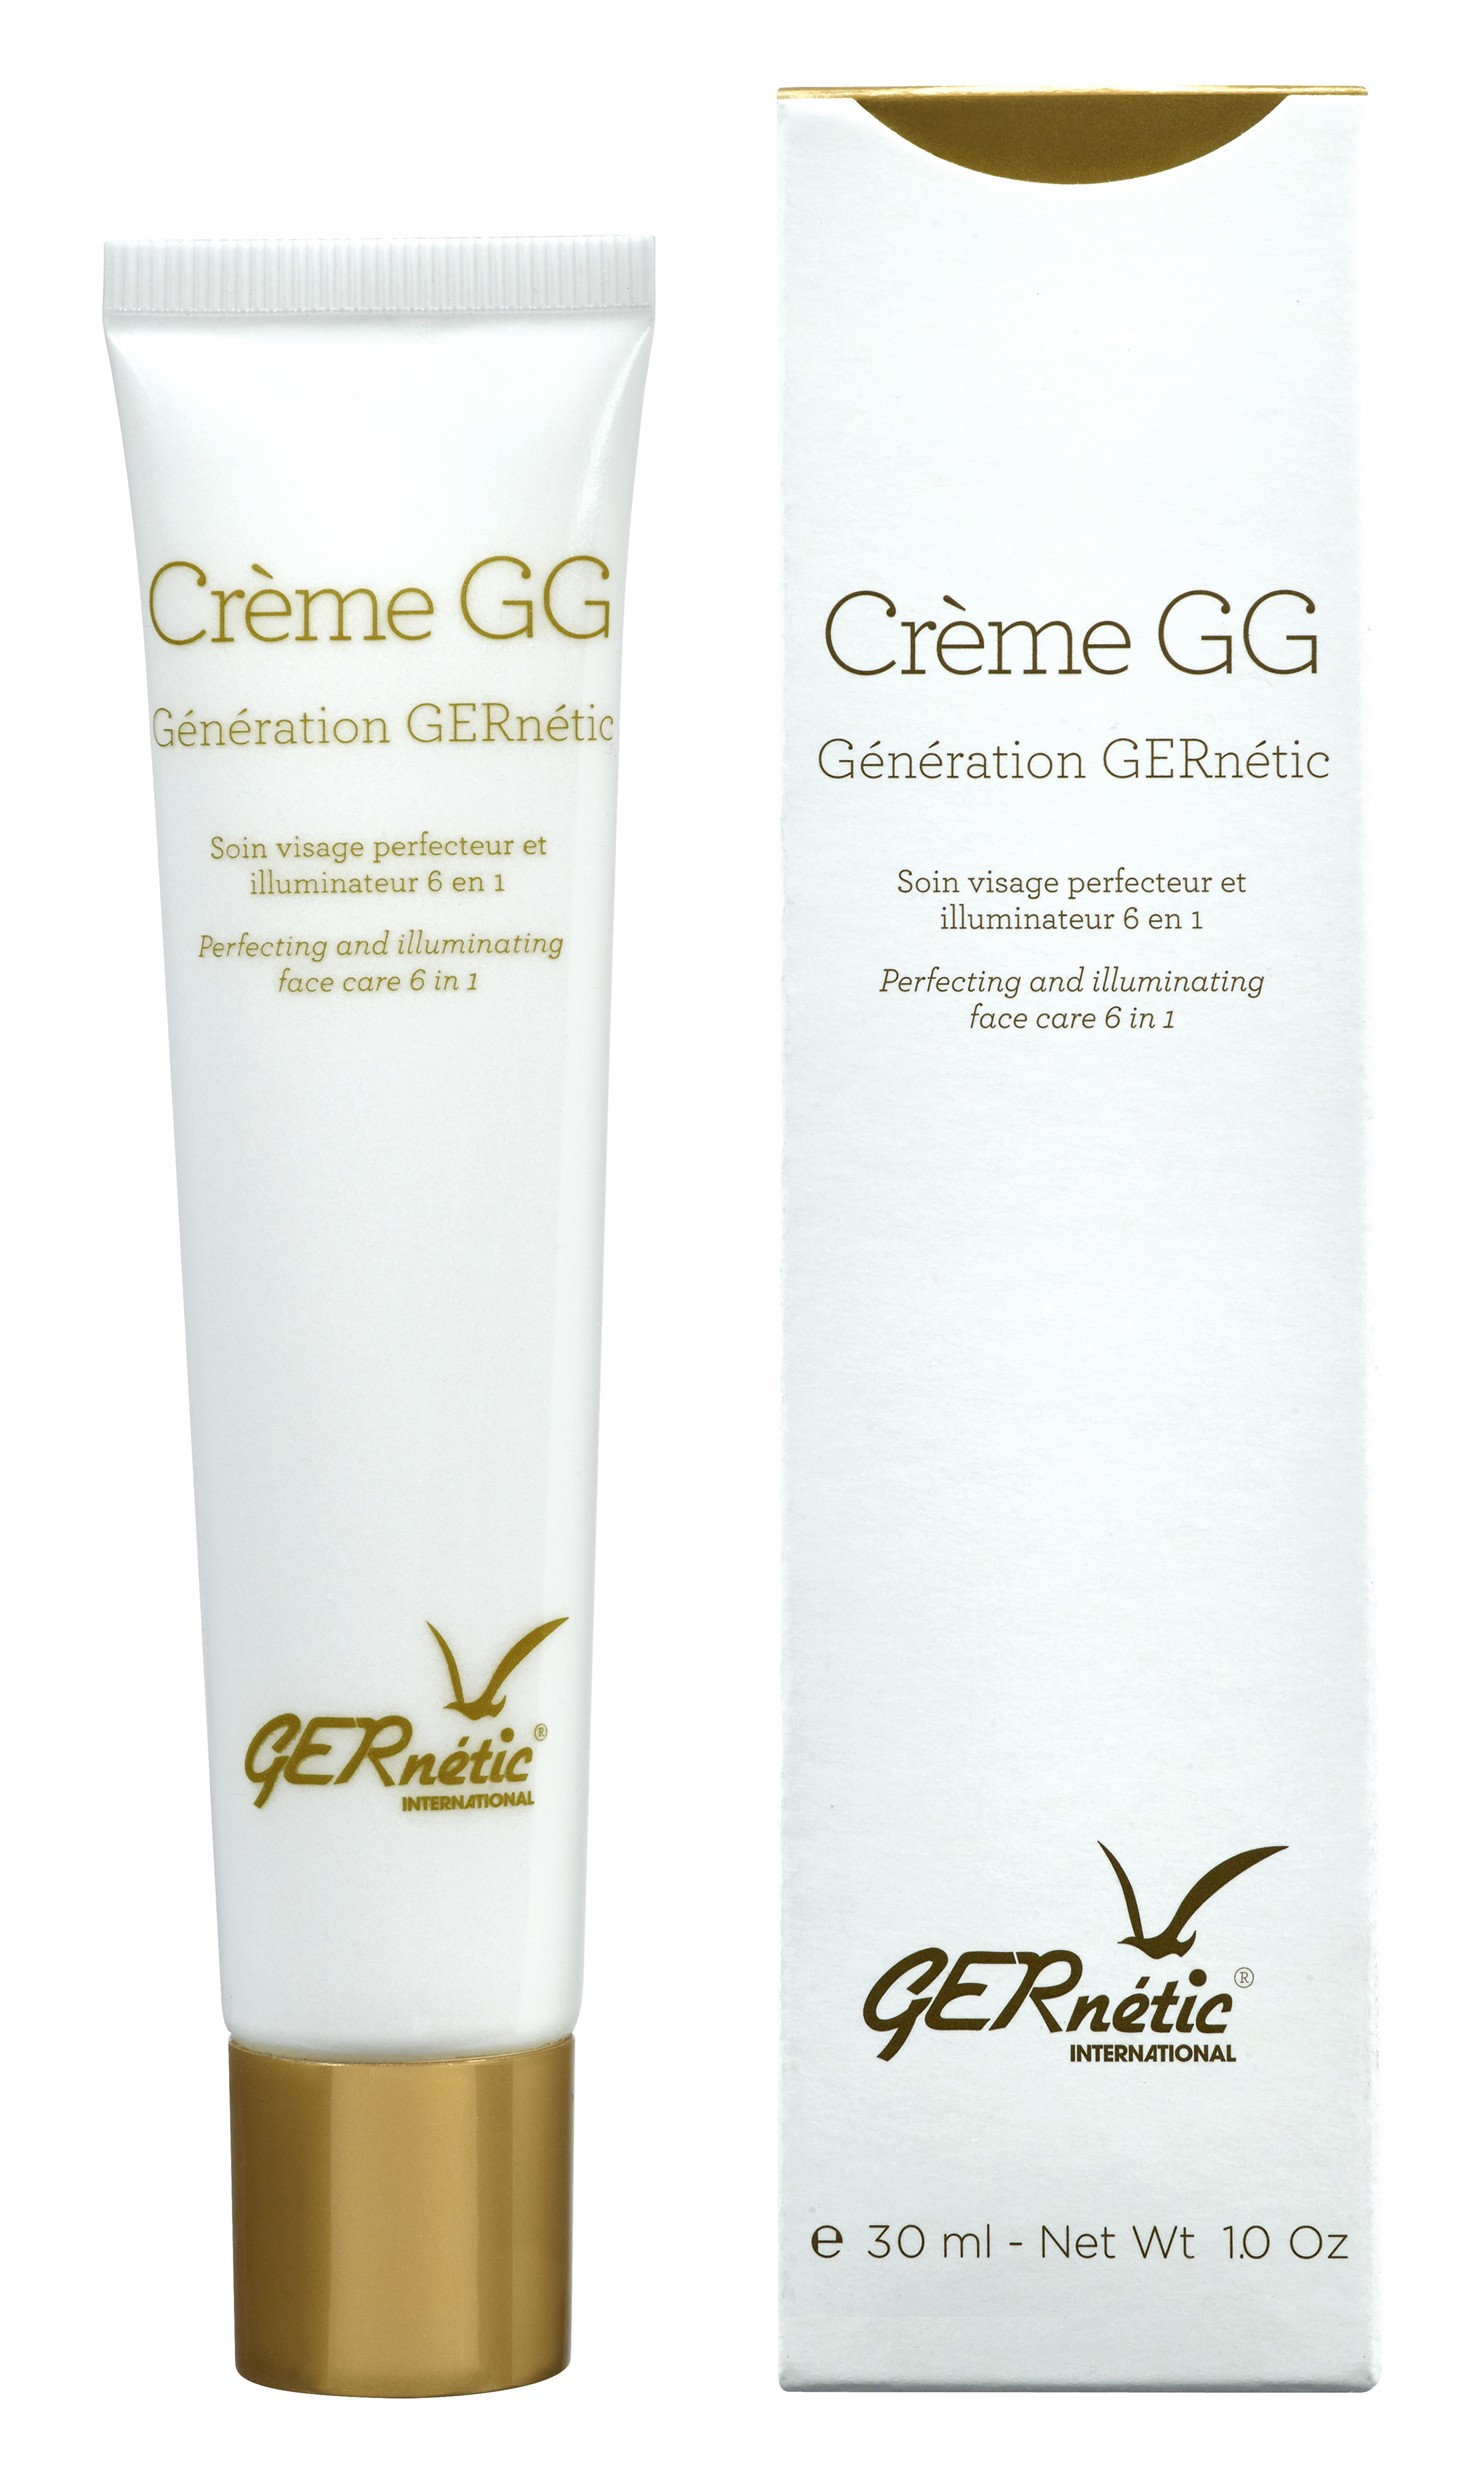 GERNETIC -  GG Cream- 6 in 1 face care (30ml)